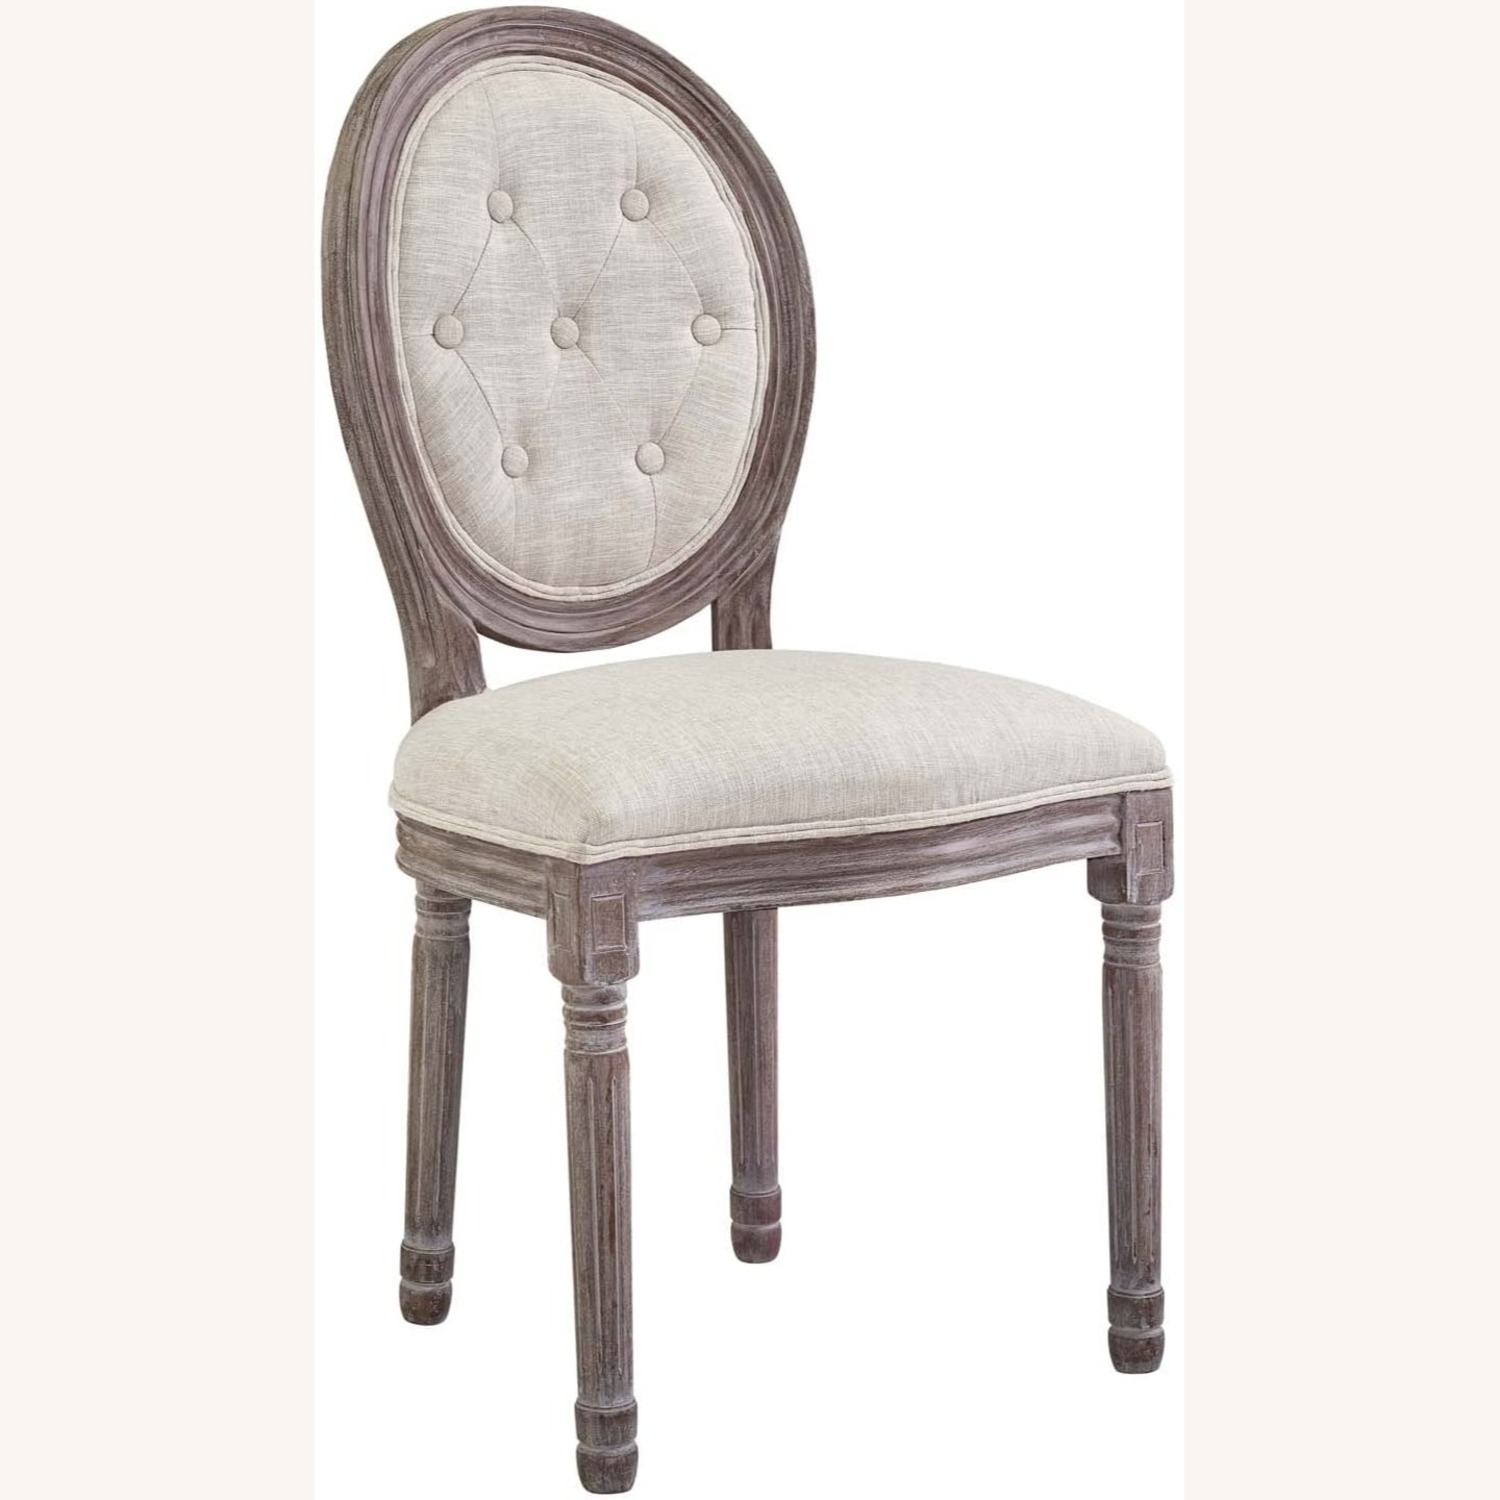 Traditional Dining Chair In Beige Fabric Finish - image-0